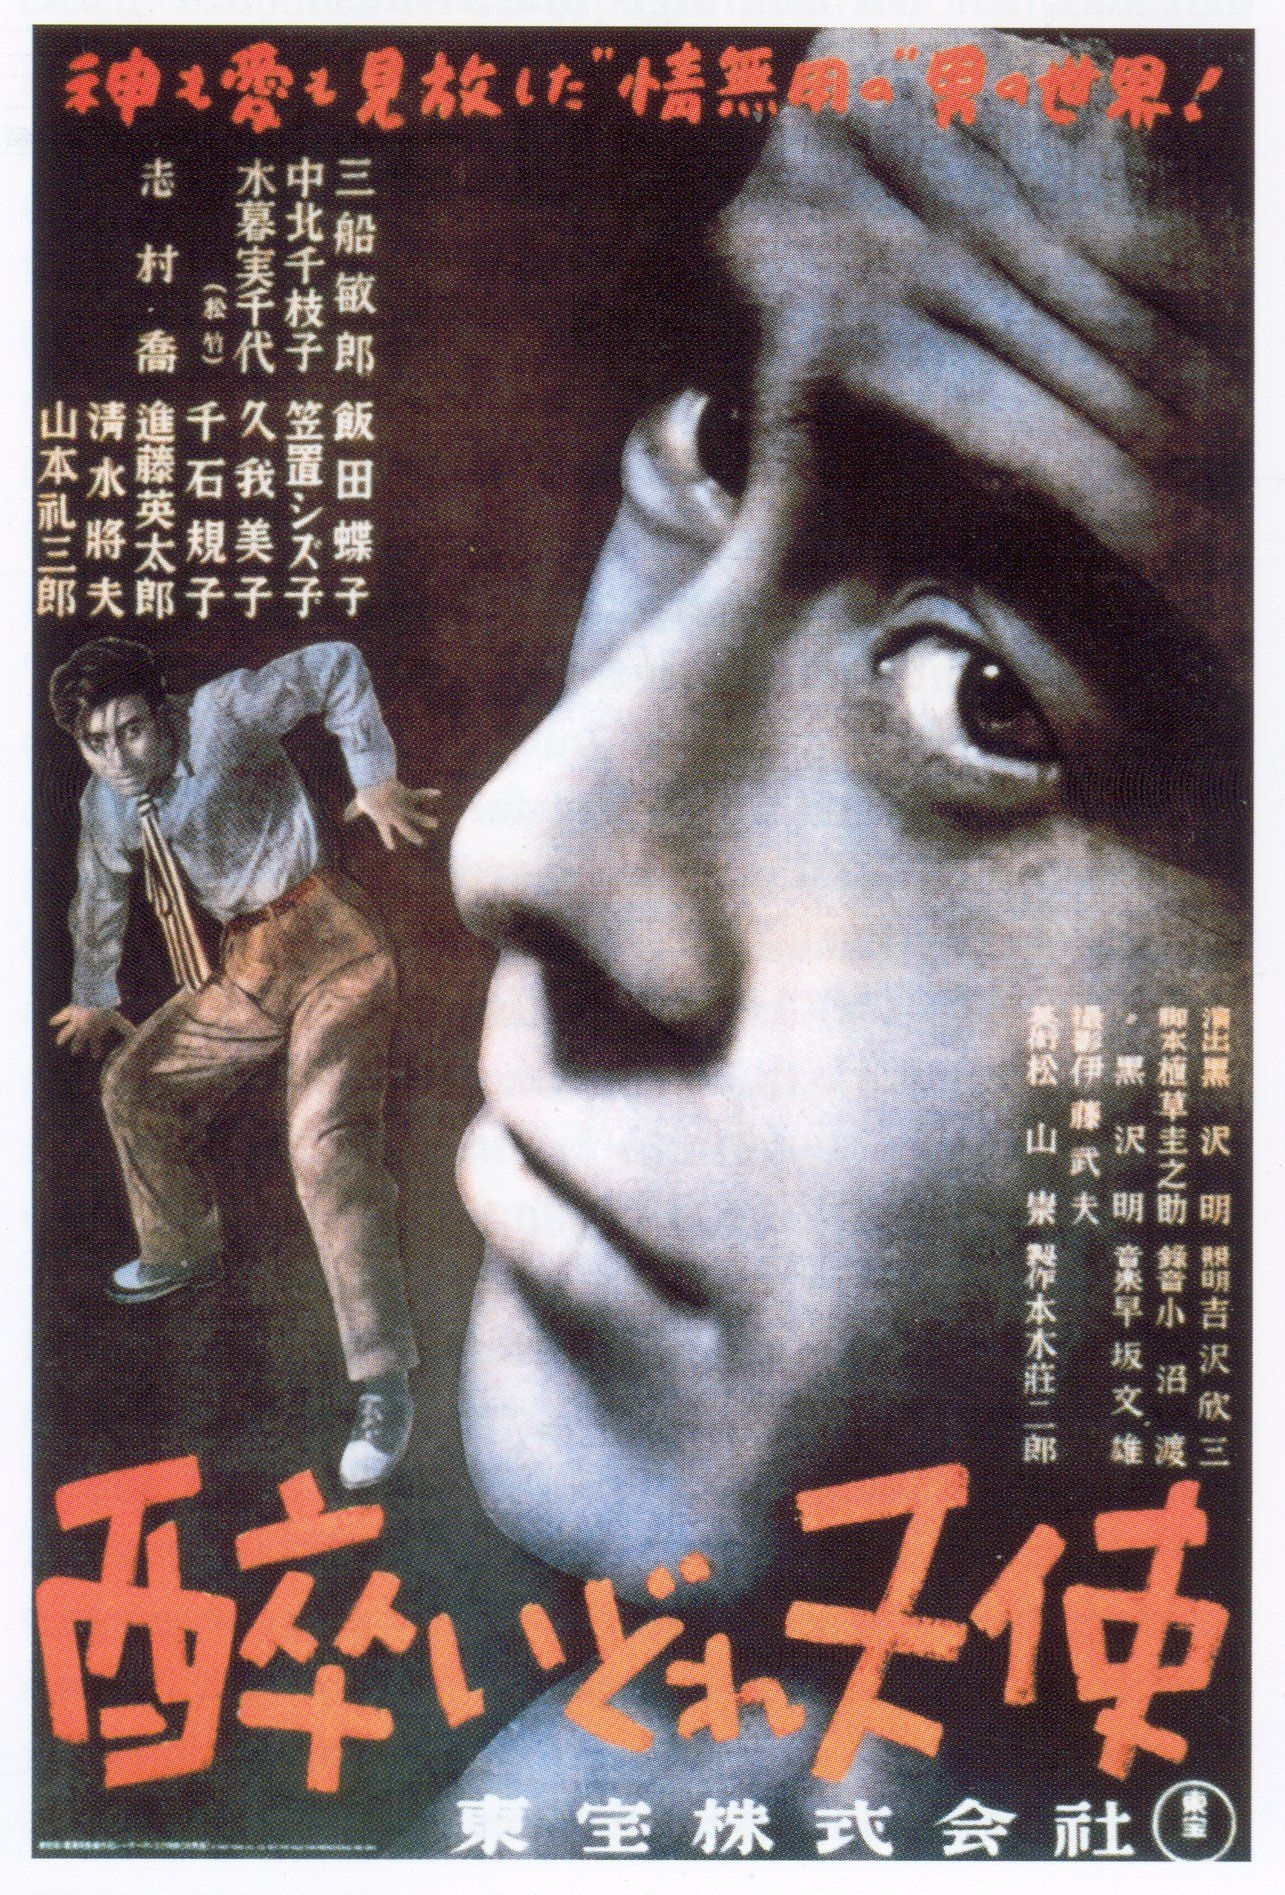 https://upload.wikimedia.org/wikipedia/commons/6/62/Yoidore_tenshi_poster.jpg